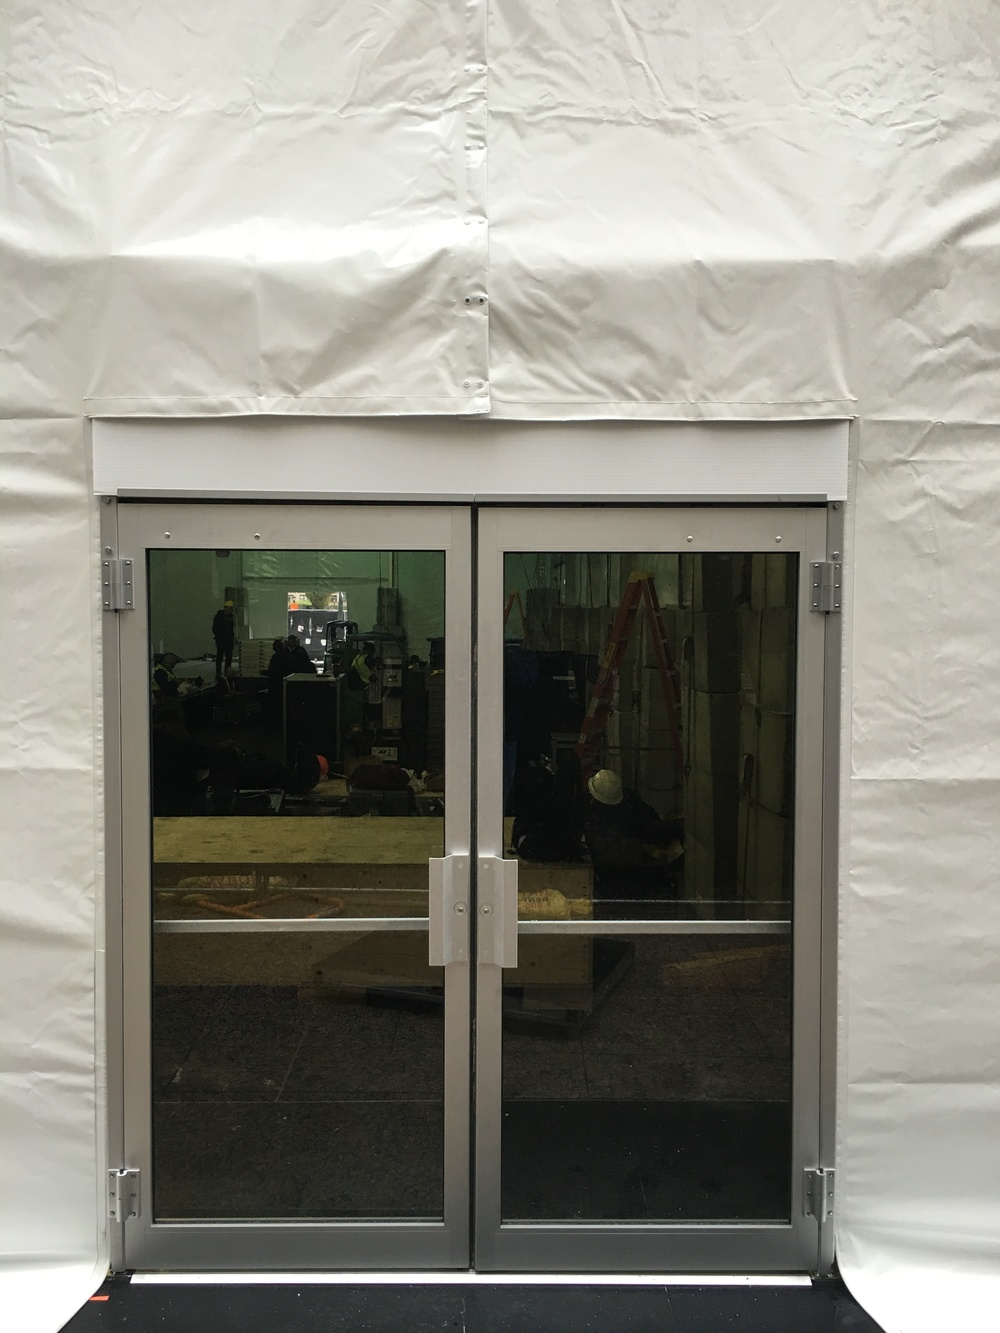 One of three tent exit doors